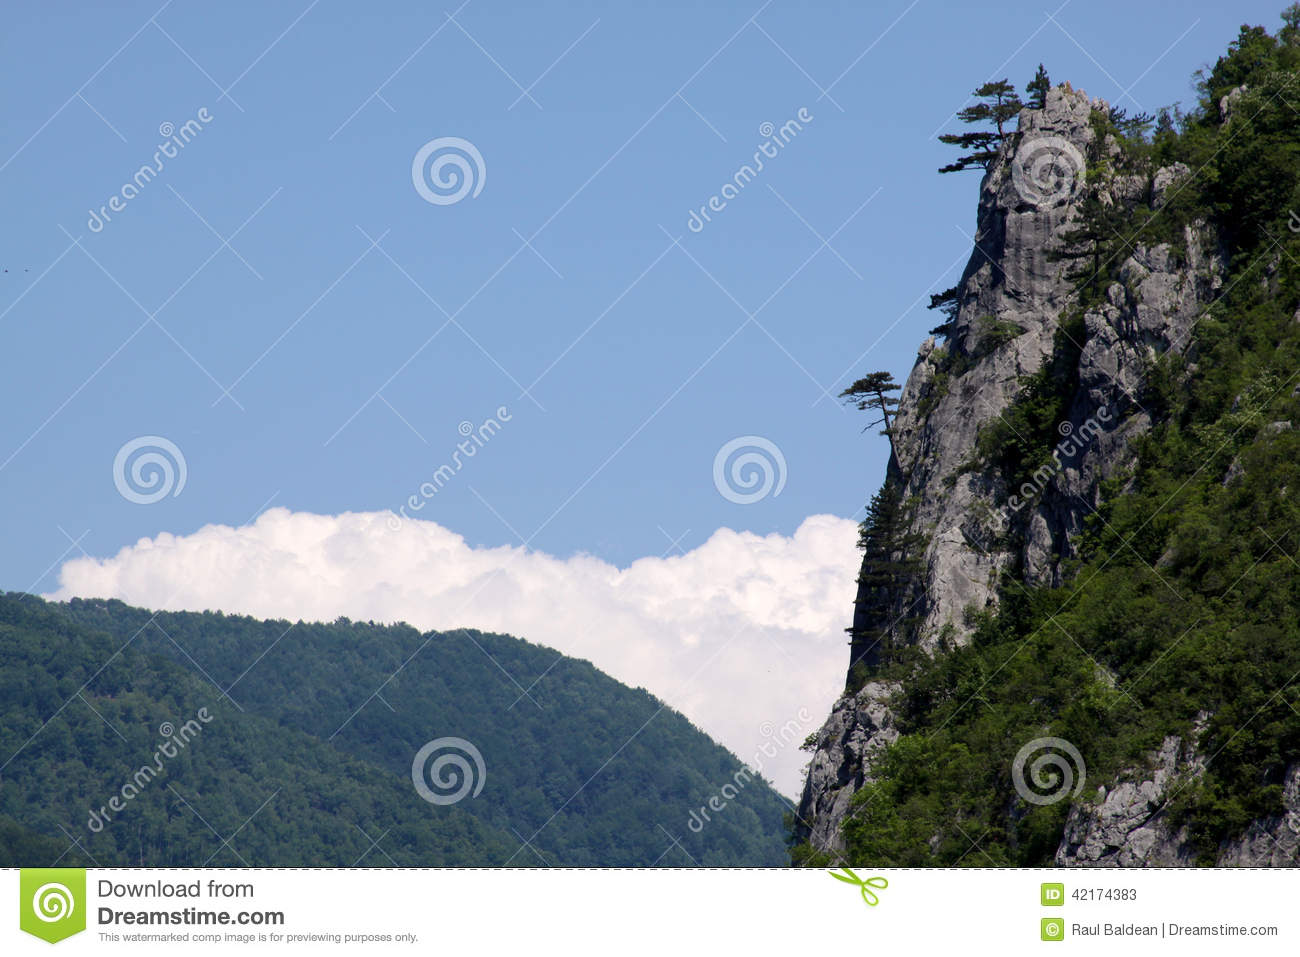 Mountain landscape with pine trees on rocks